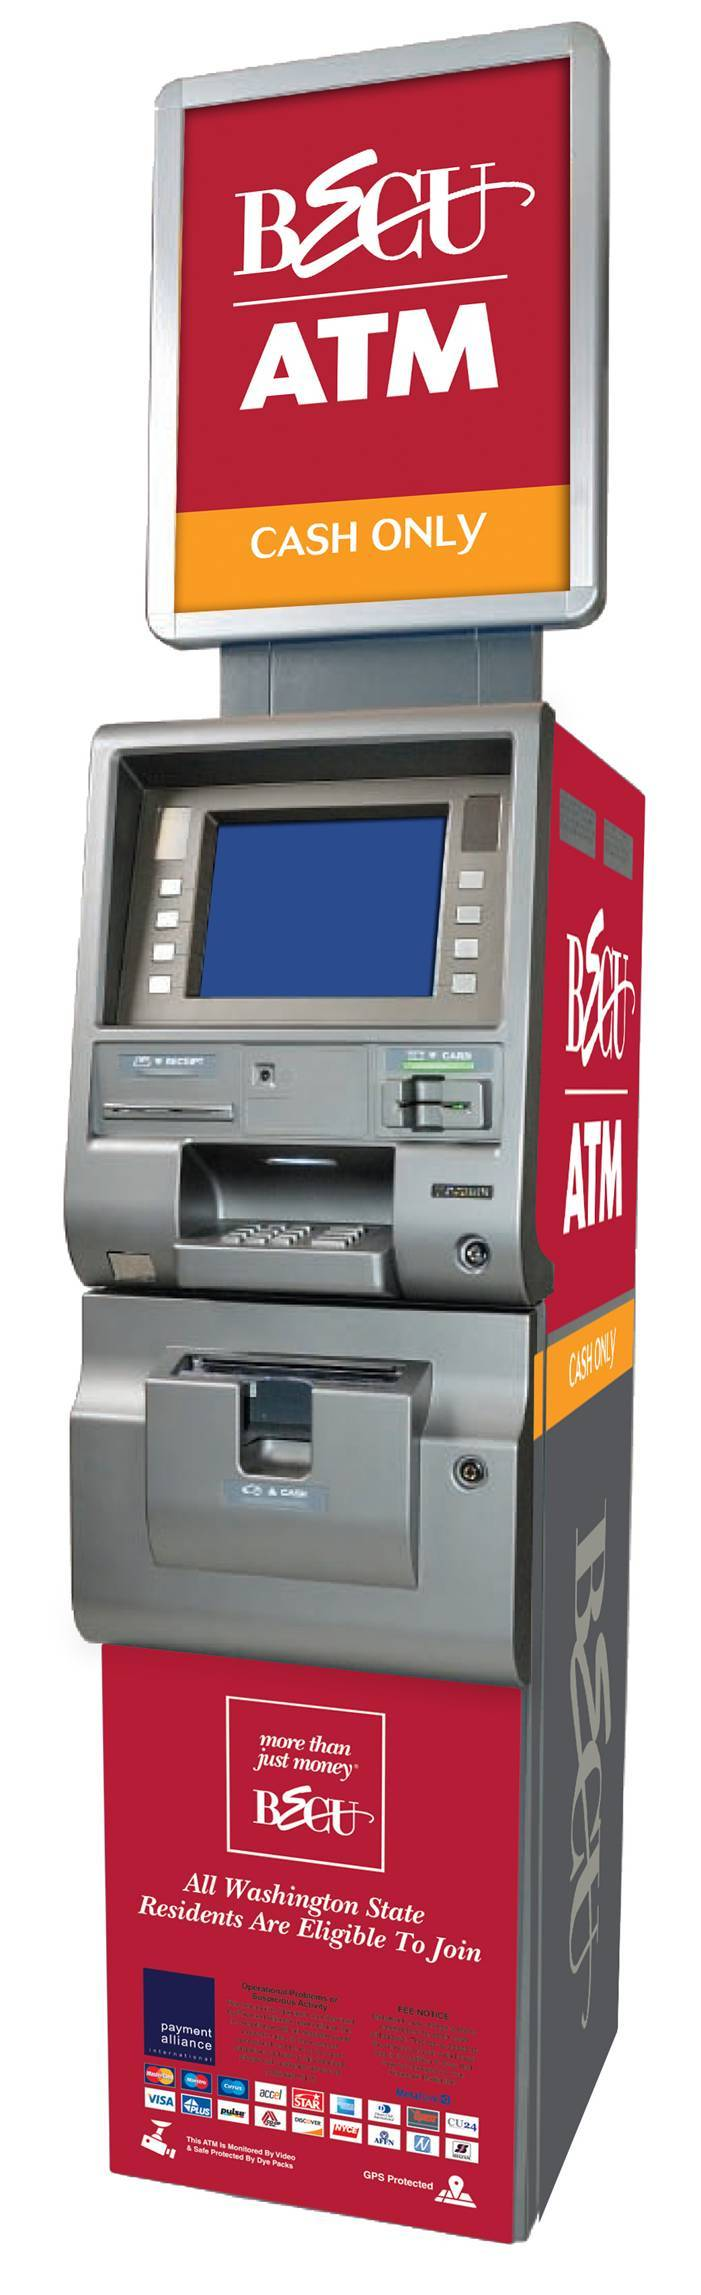 BECU-Branded ATM at Rite Aid Stores (Photo: Business Wire)